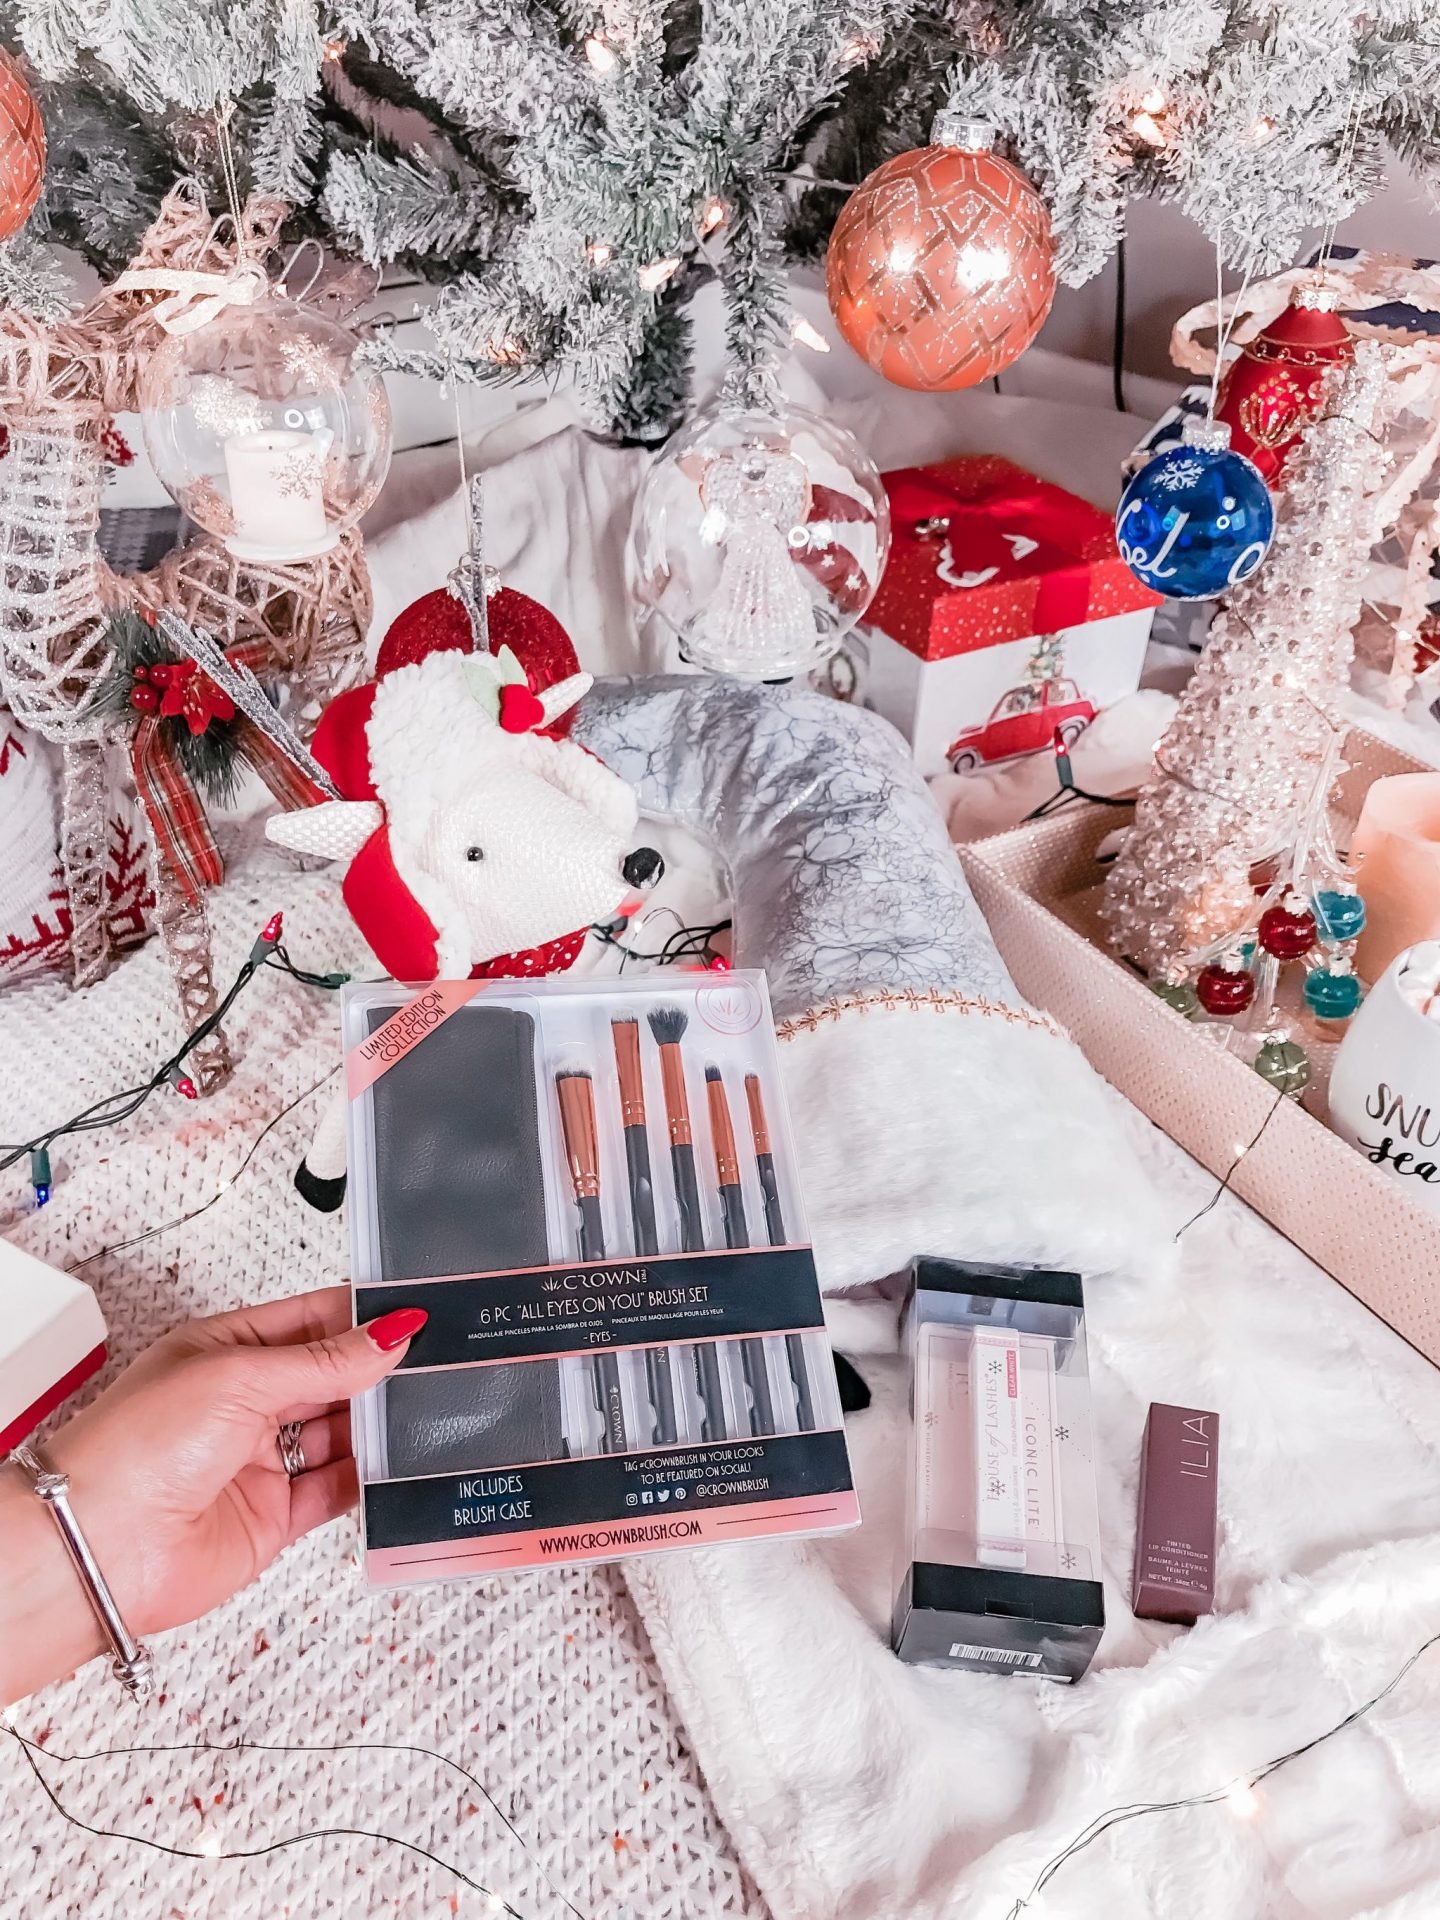 Last Minute Beauty Gifts from CurliQue